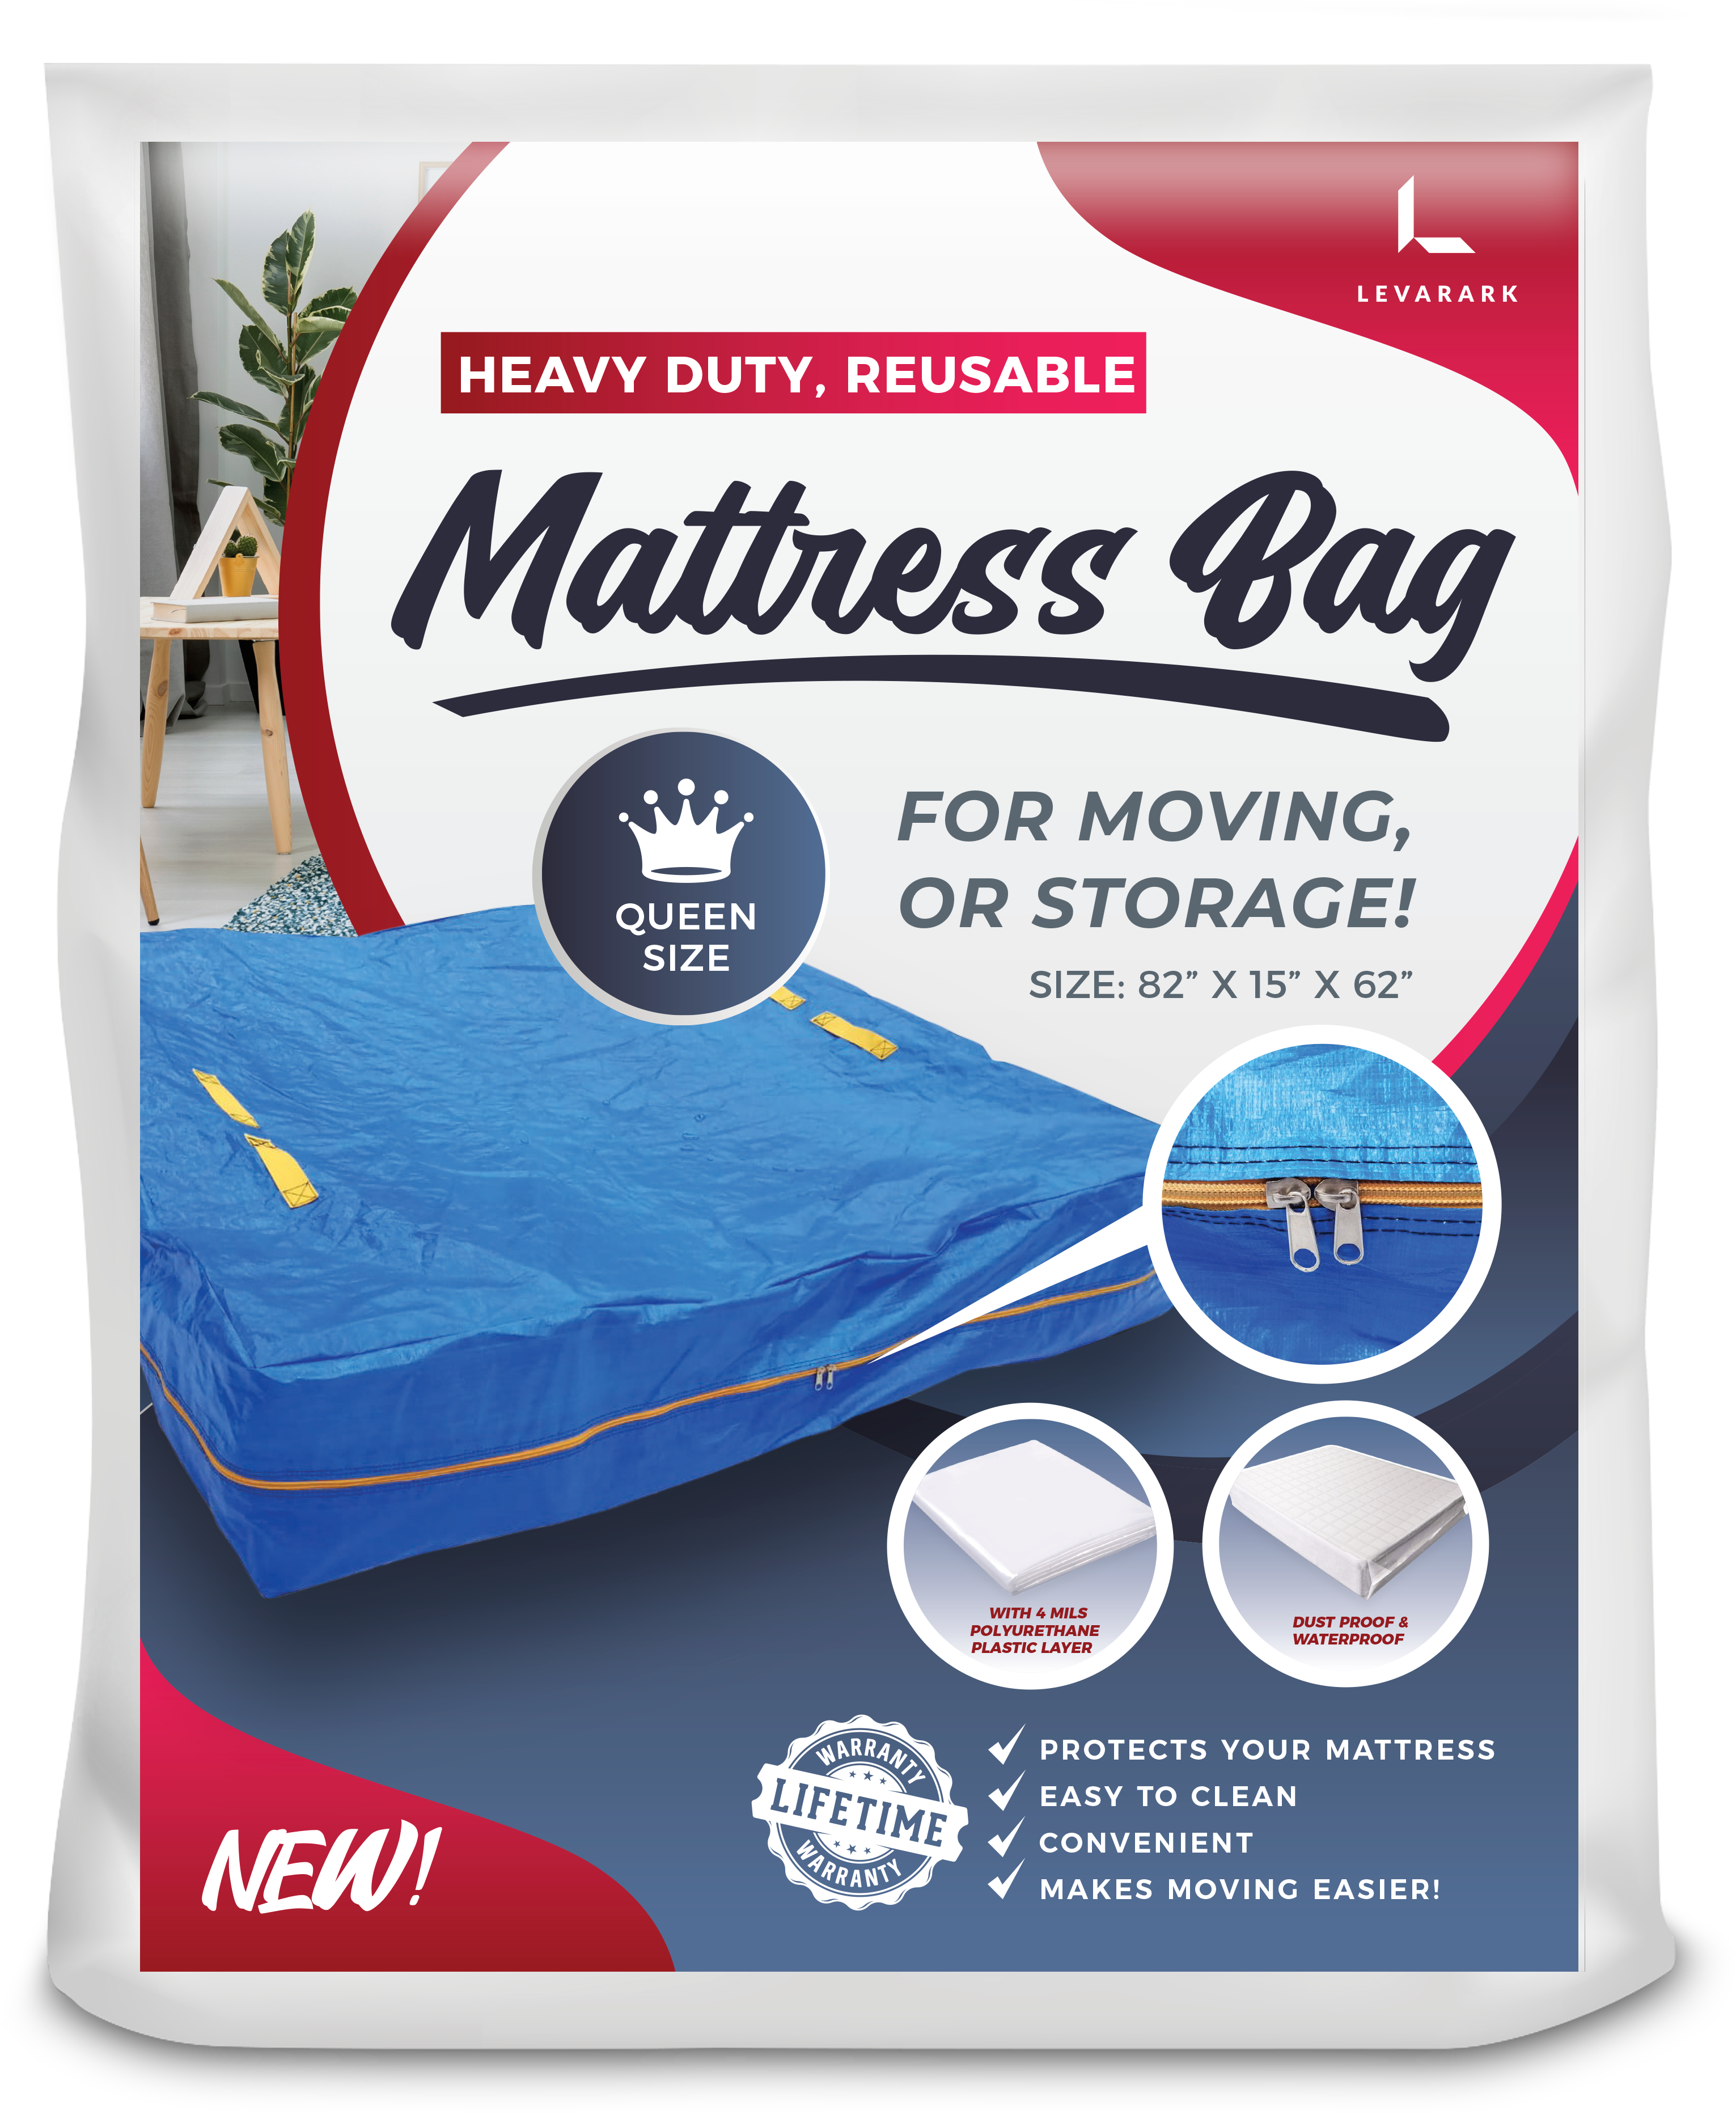 Reusable Mattress Bag for moving and storage - Levarark